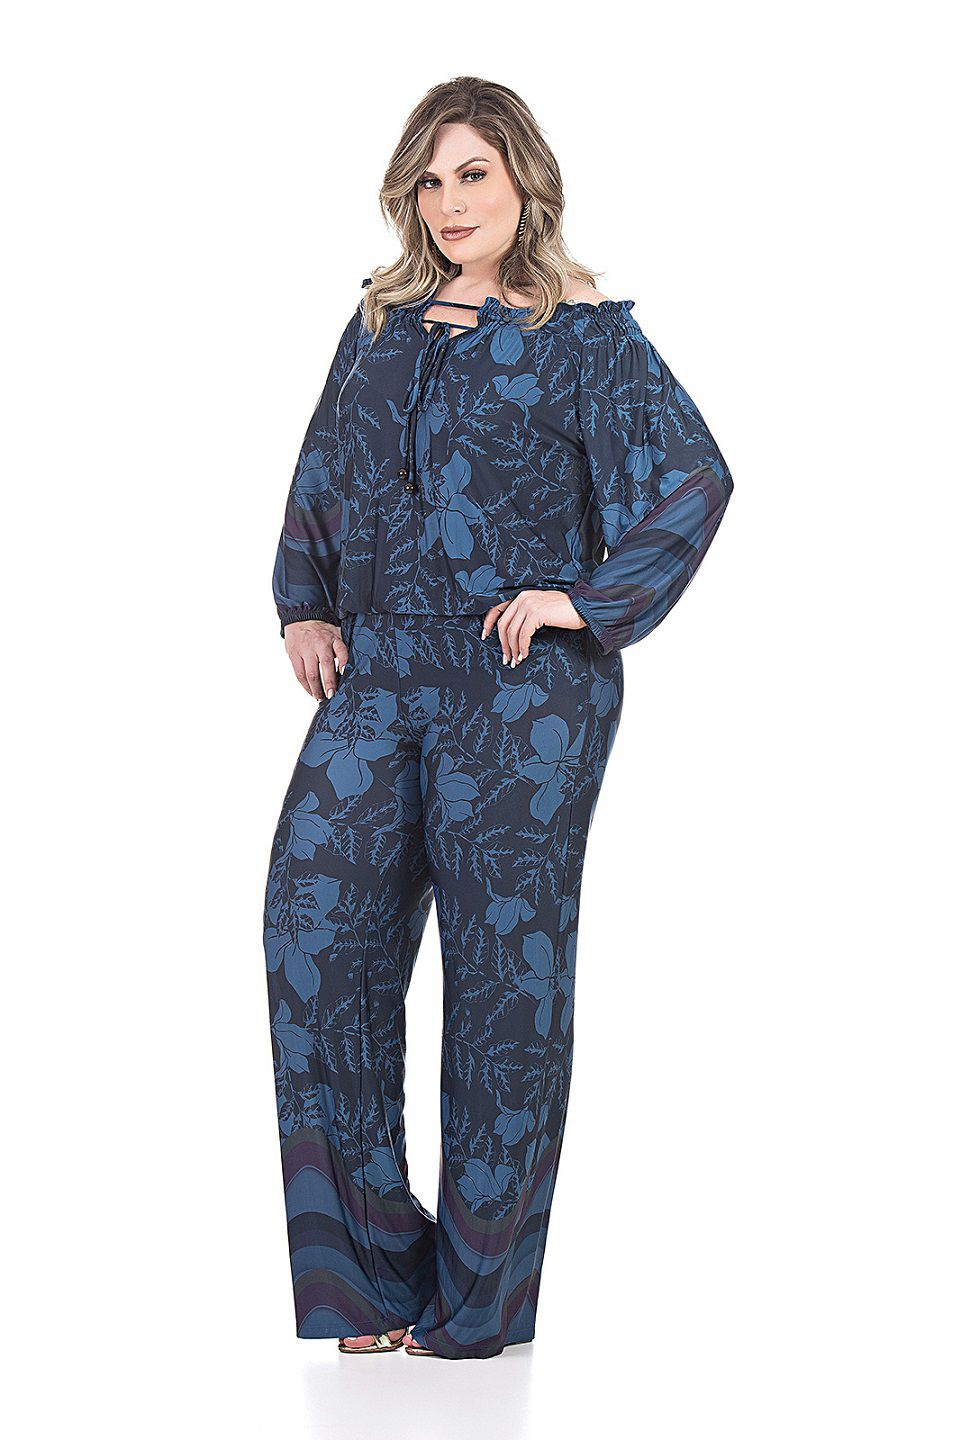 MACACAO OMBRO A OMBRO - Plus Size